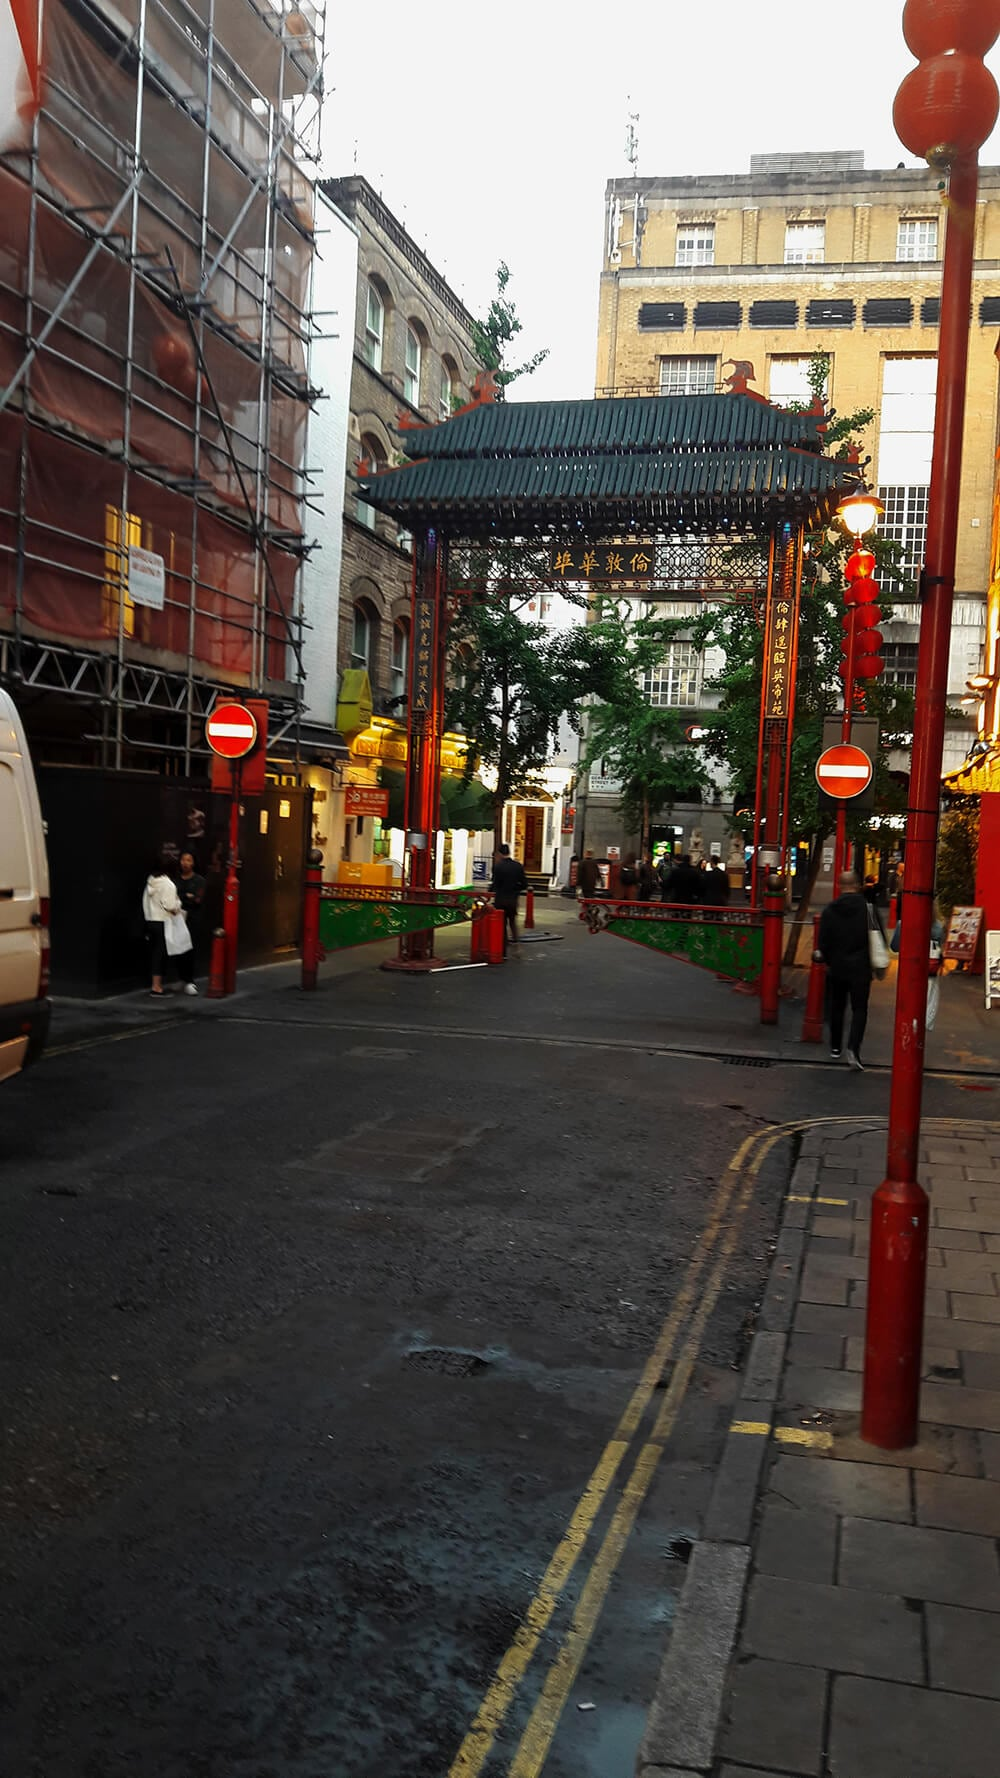 That's London's Chinatown for you!